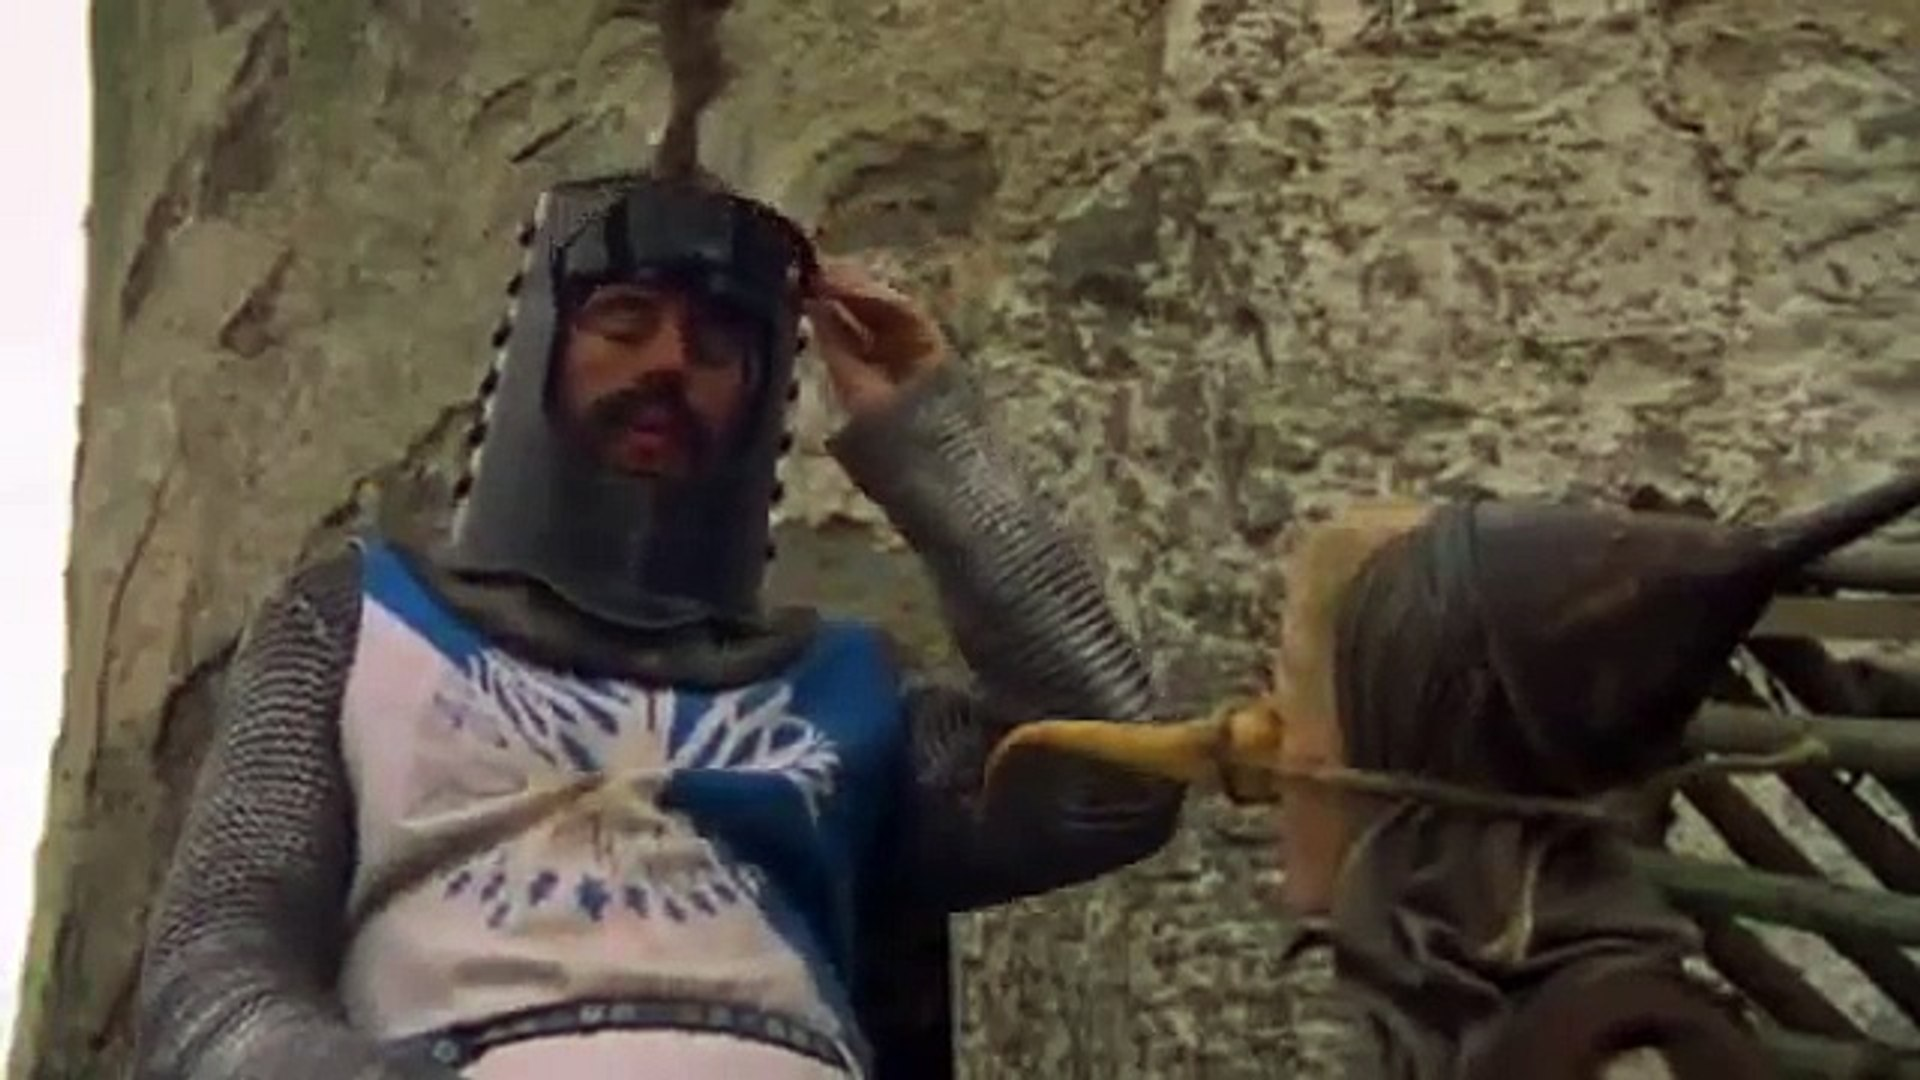 Monty Python and the Holy Grail witch